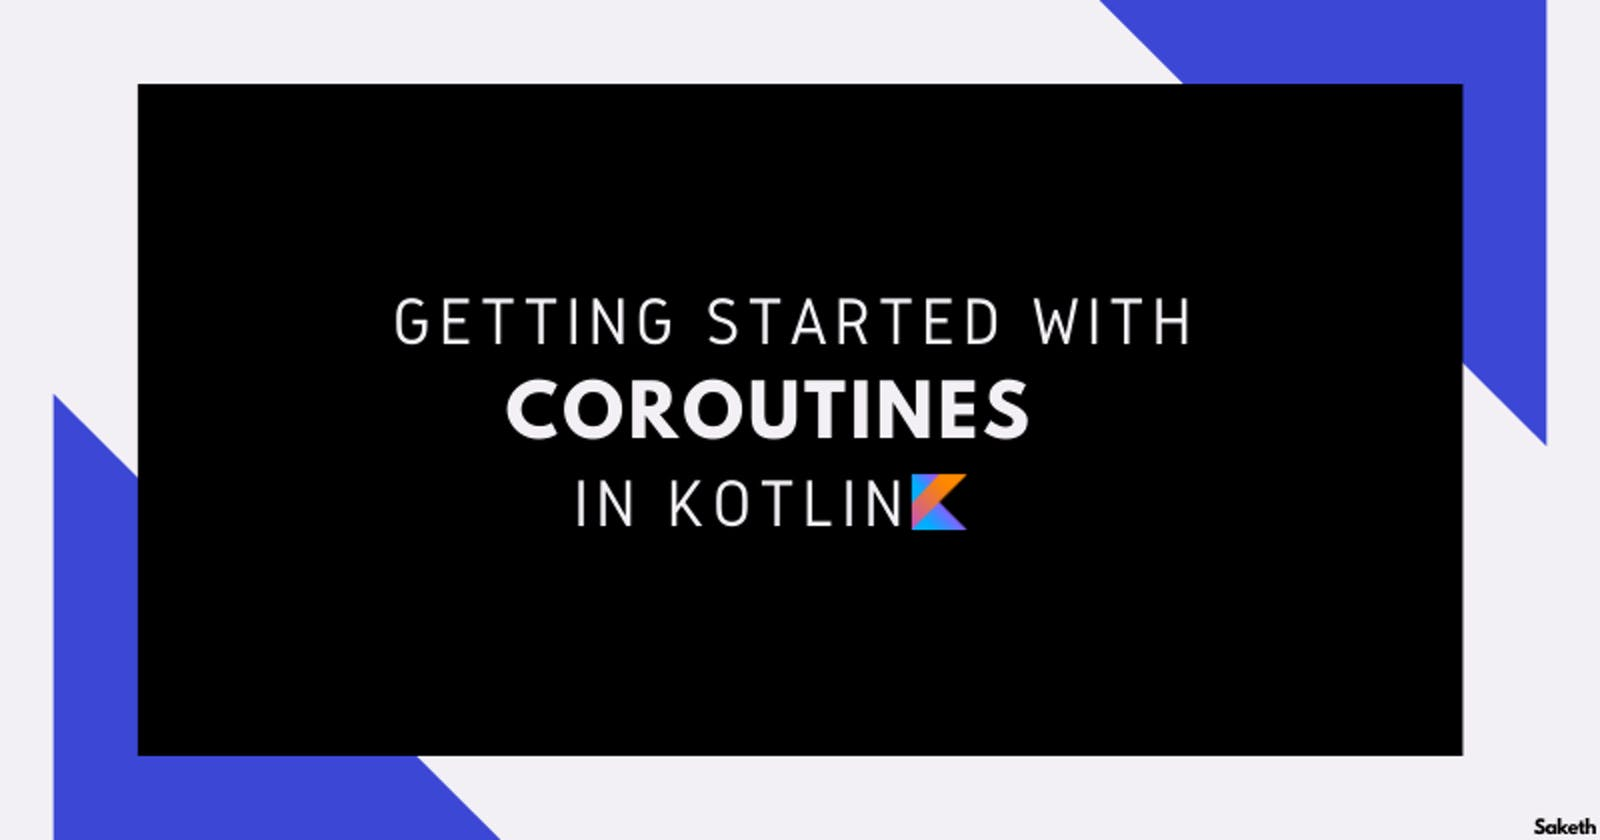 Getting Started With Coroutines In Kotlin